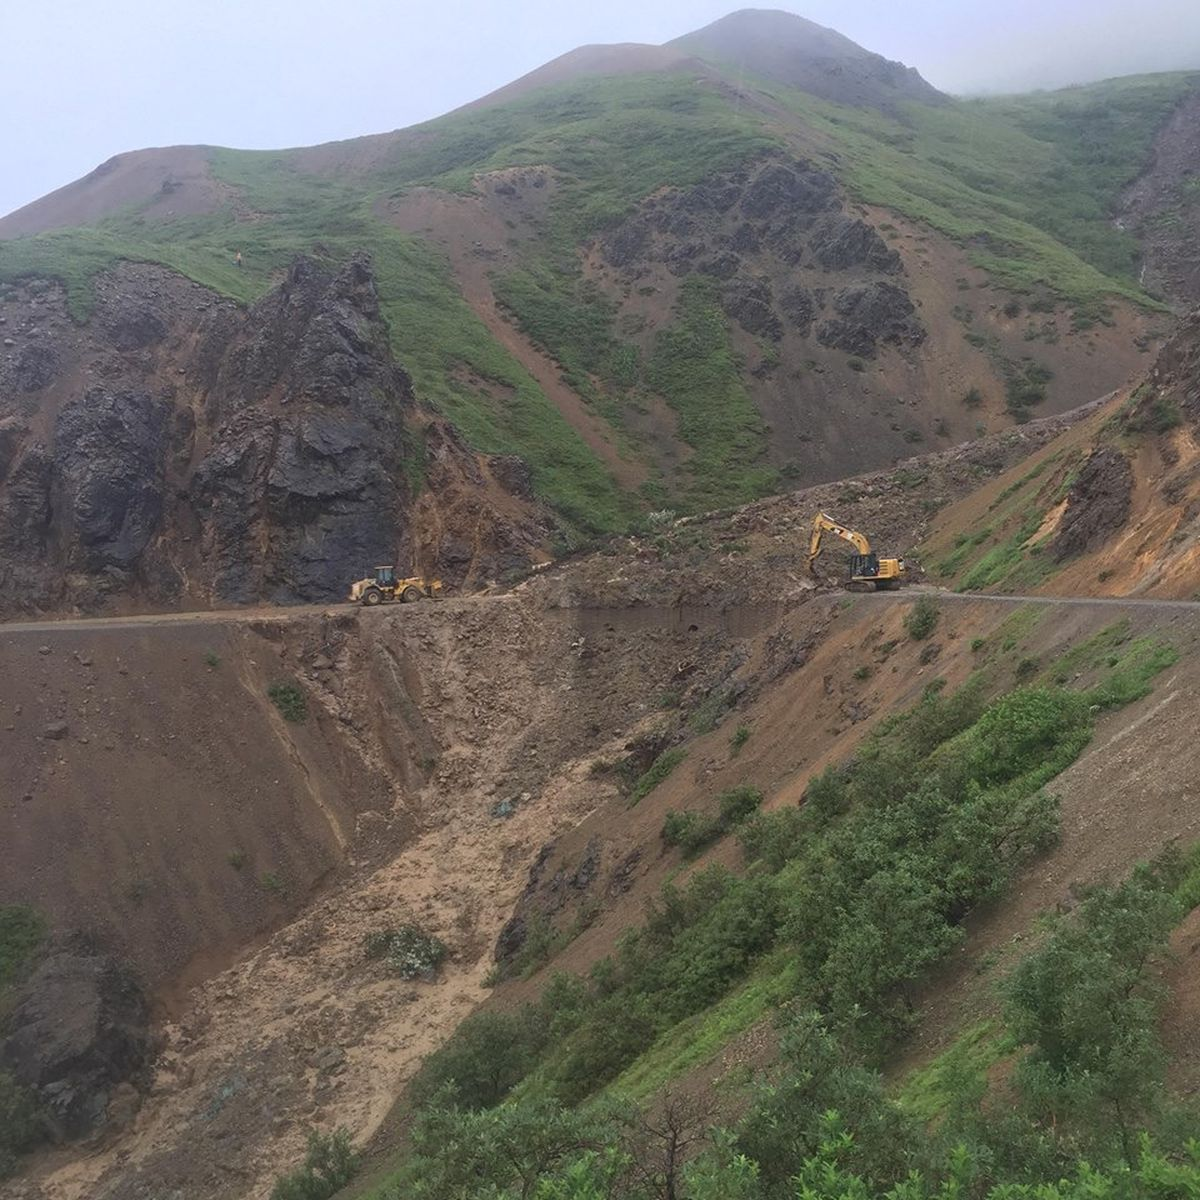 Park staff closed the Denali Park Road at mile 67 after a large mudslide on July 30, 2016. The road reopened on Aug. 9. (Photo by James Long)